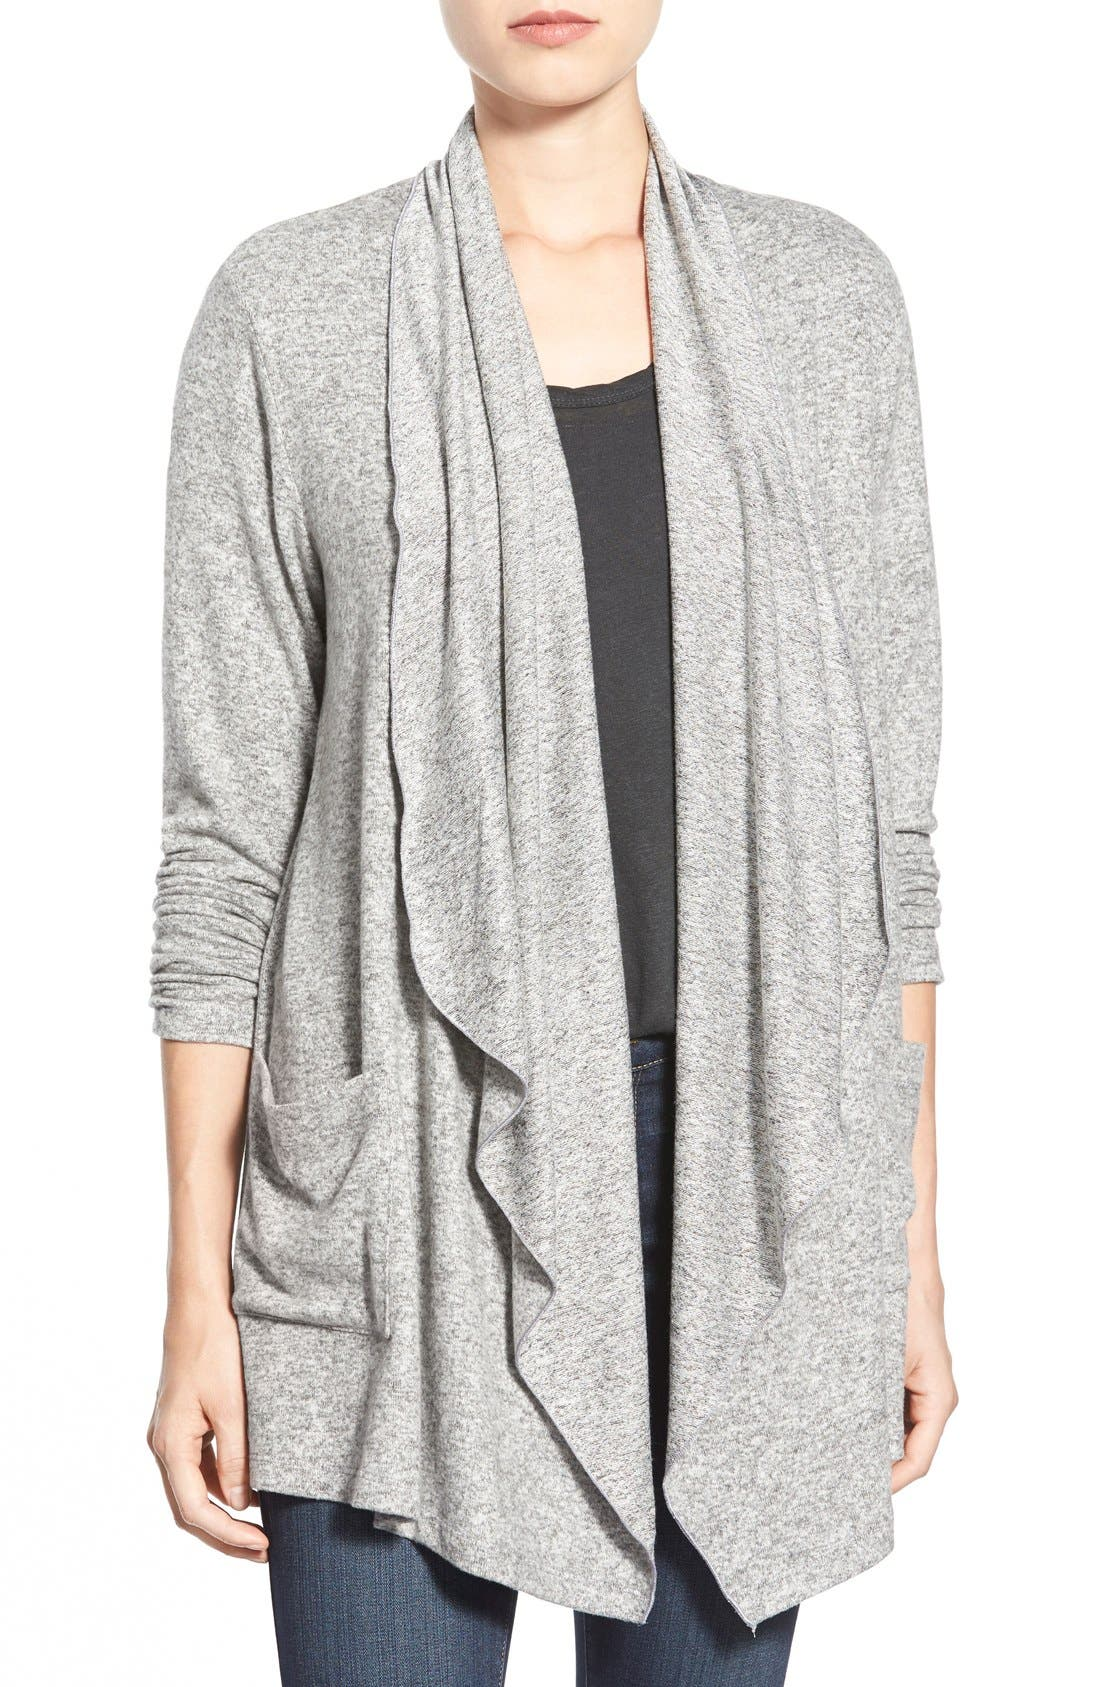 Main Image - Bobeau Two-Pocket Drape Front Cardigan (Regular & Petite)